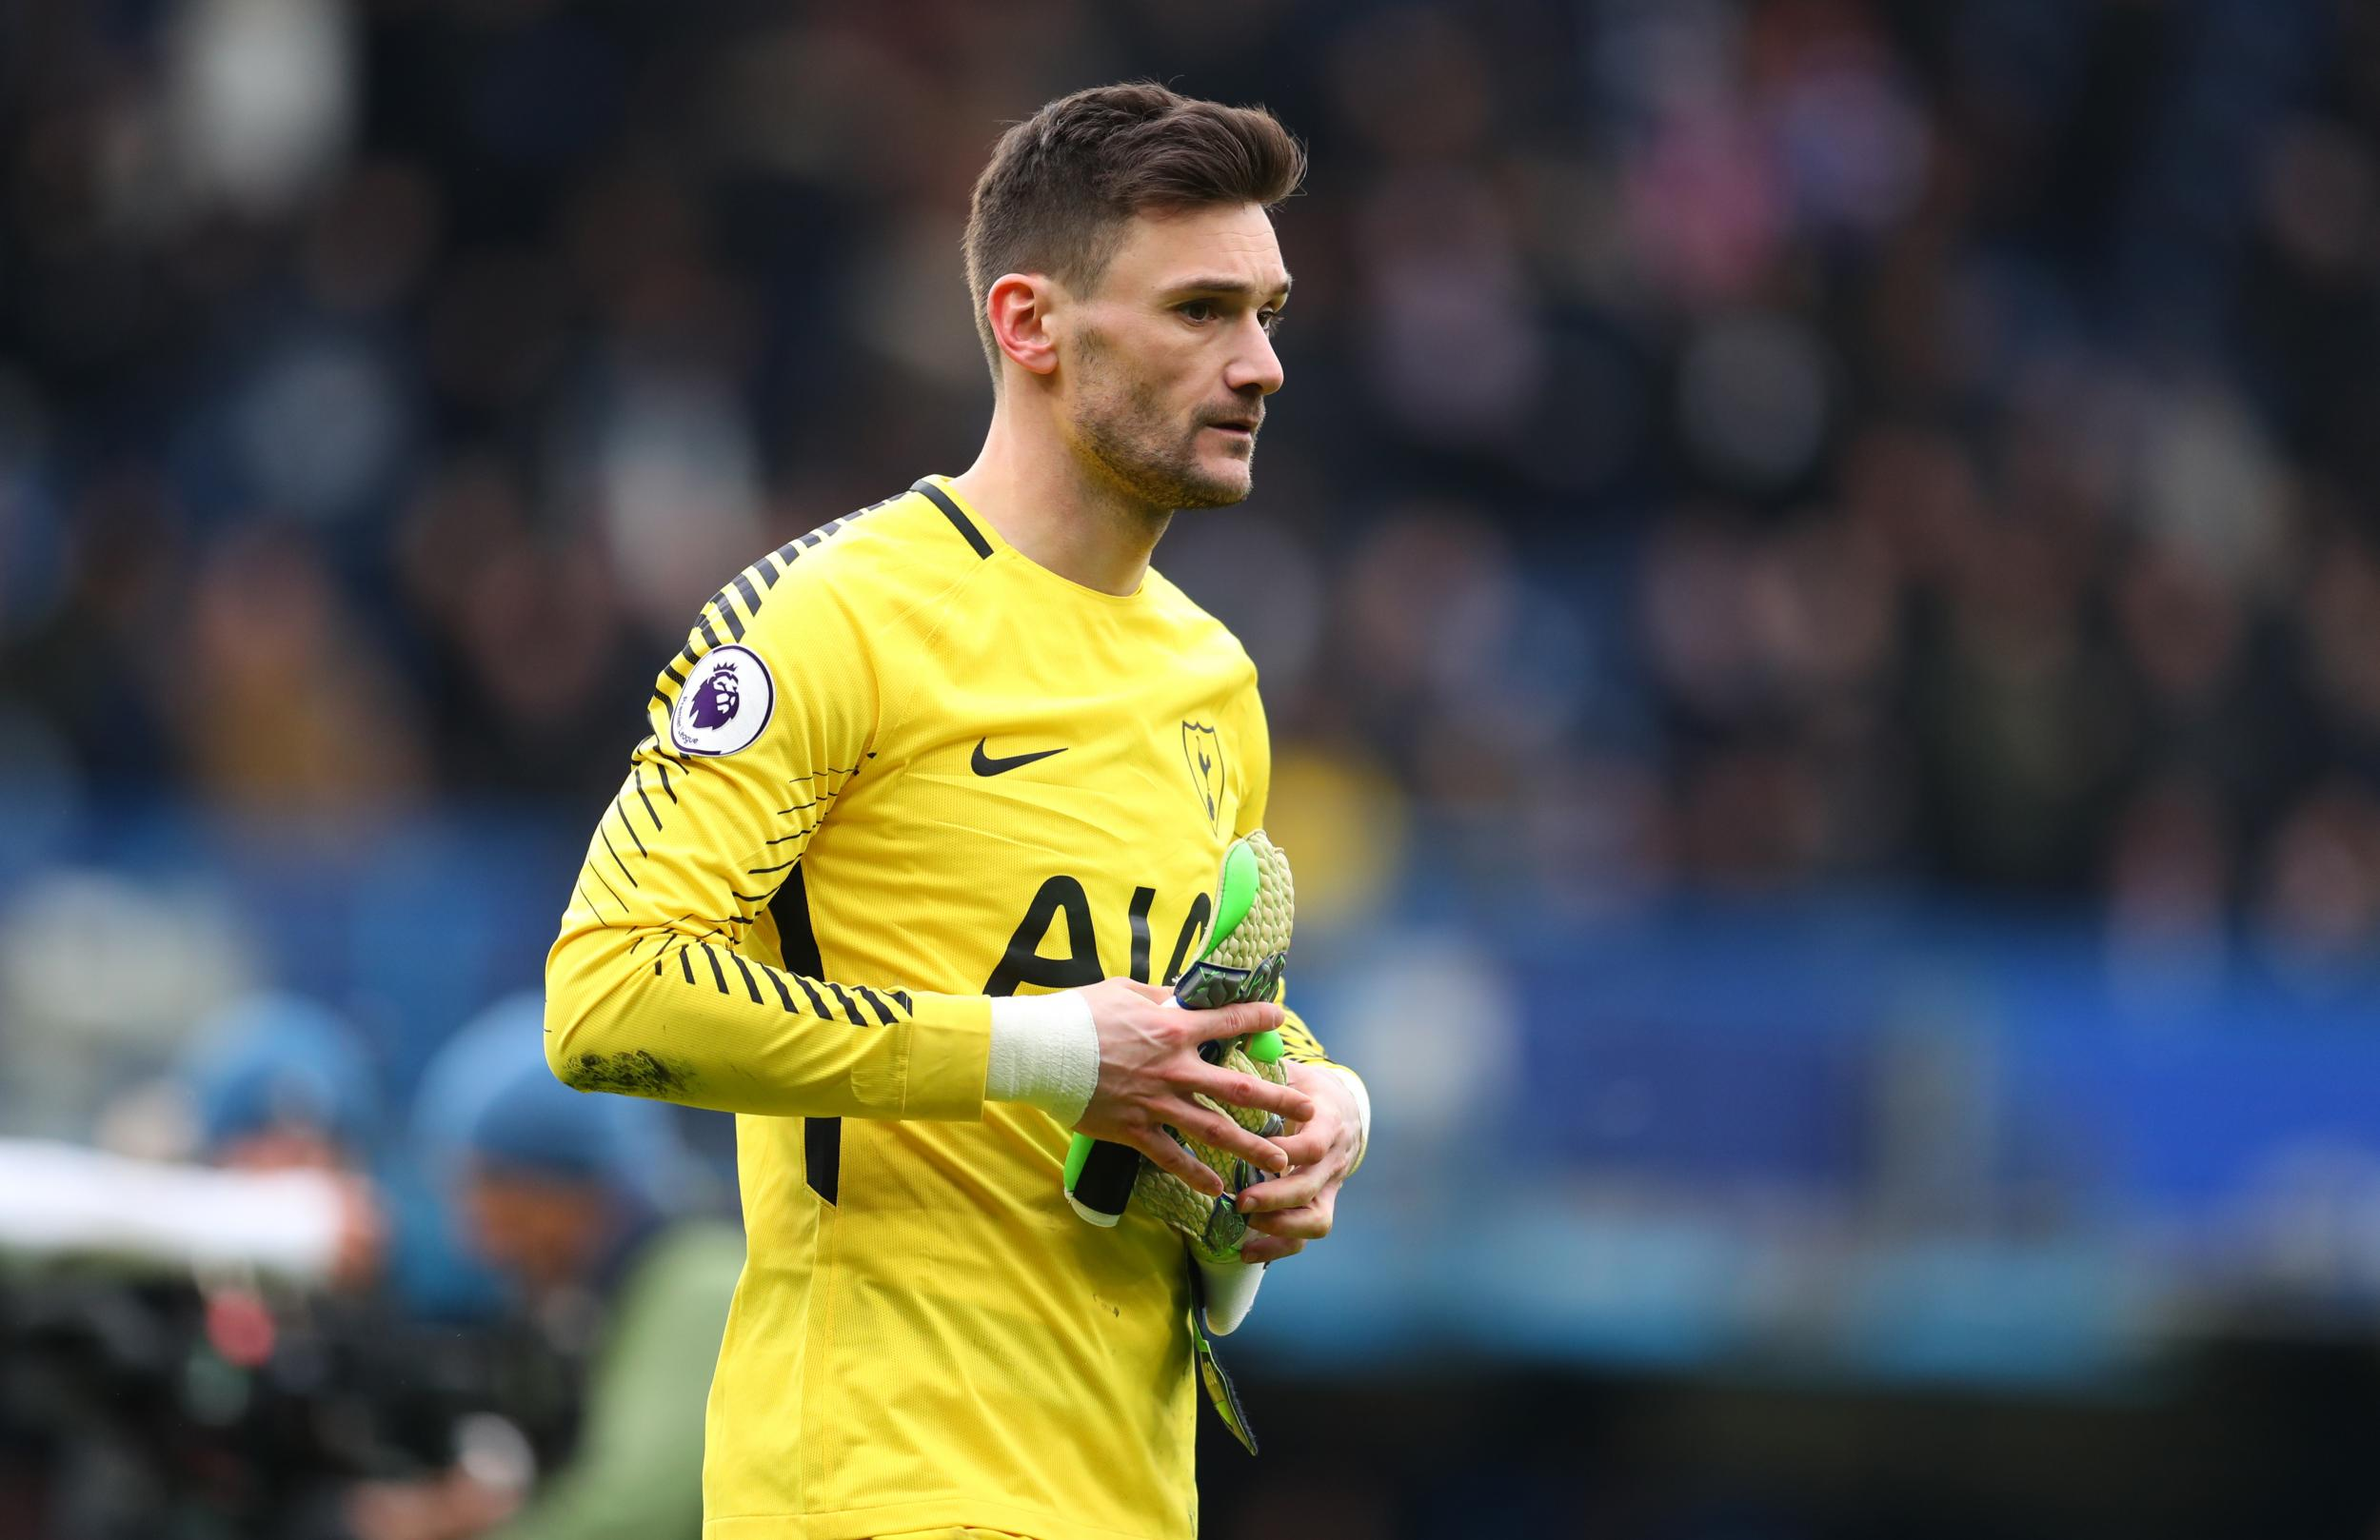 7317a1c4566 Tottenham's Hugo Lloris charged with drink driving ahead of Manchester  United clash | The Independent